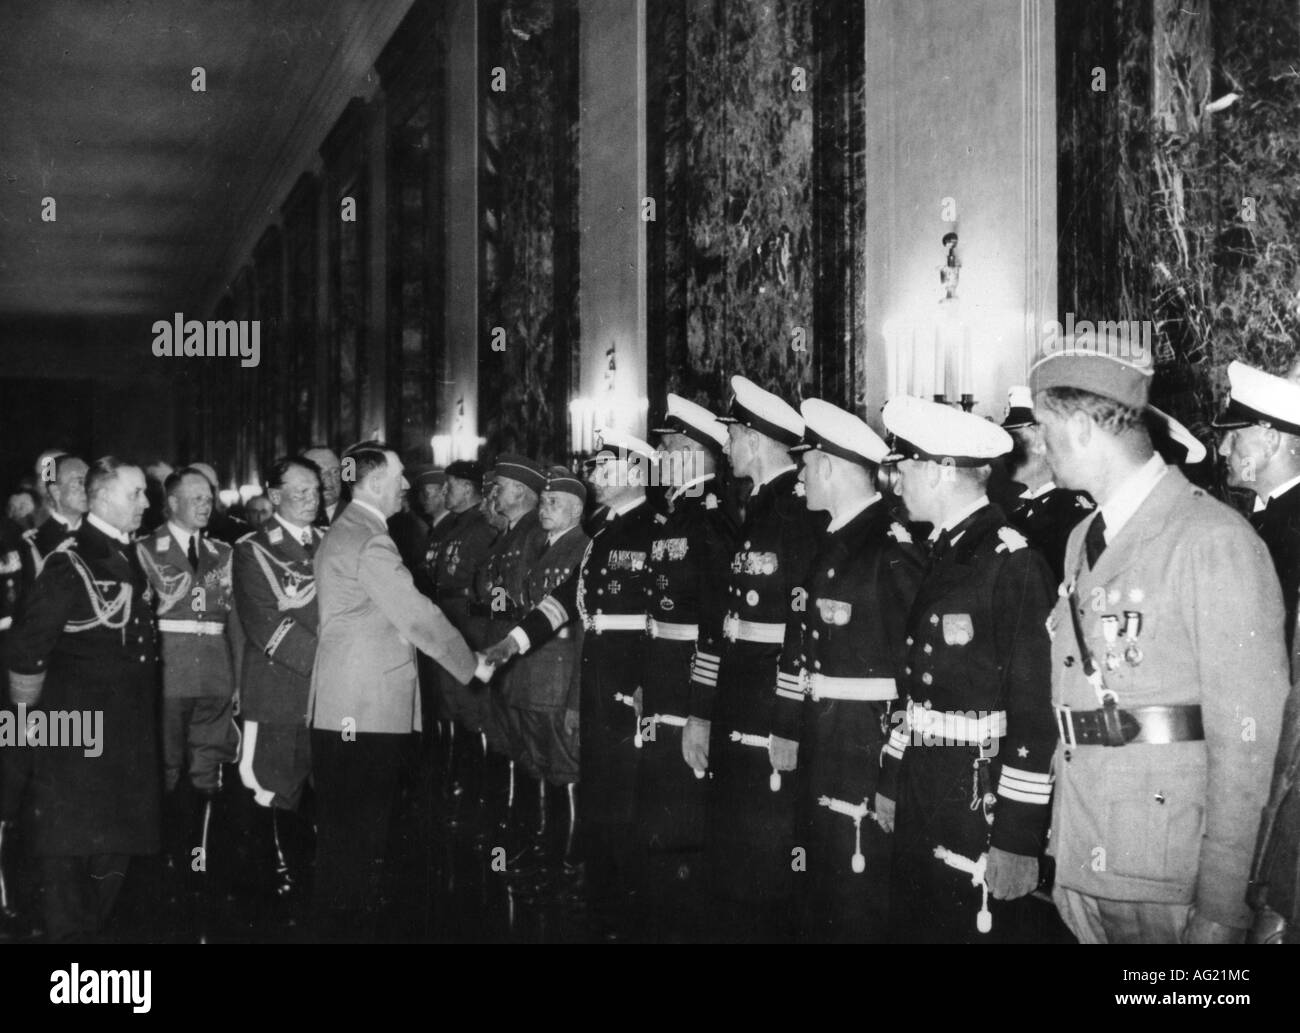 geography / travel, Spain, Spanish Civil War 1936 - 1939, Legion Condor, reception of officers in the New Reich Chancellery, Reich Chancellor Adolf Hitler, General Hermann Goering, Admiral Erich Raeder, Berlin, 5.6.1939, German armed forces, air force, Luftwaffe, navy, Kriegsmarine, army, Germany, uniform, uniforms, soldiers, ceremony, handshake, shaking hands, Third Reich, National Socialism, Nazism, Wehrmacht, Goring, 20th century, historic, historical, 1930s, Erhard Milch, Göring, male, man, men, people, Additional-Rights-Clearances-NA - Stock Image